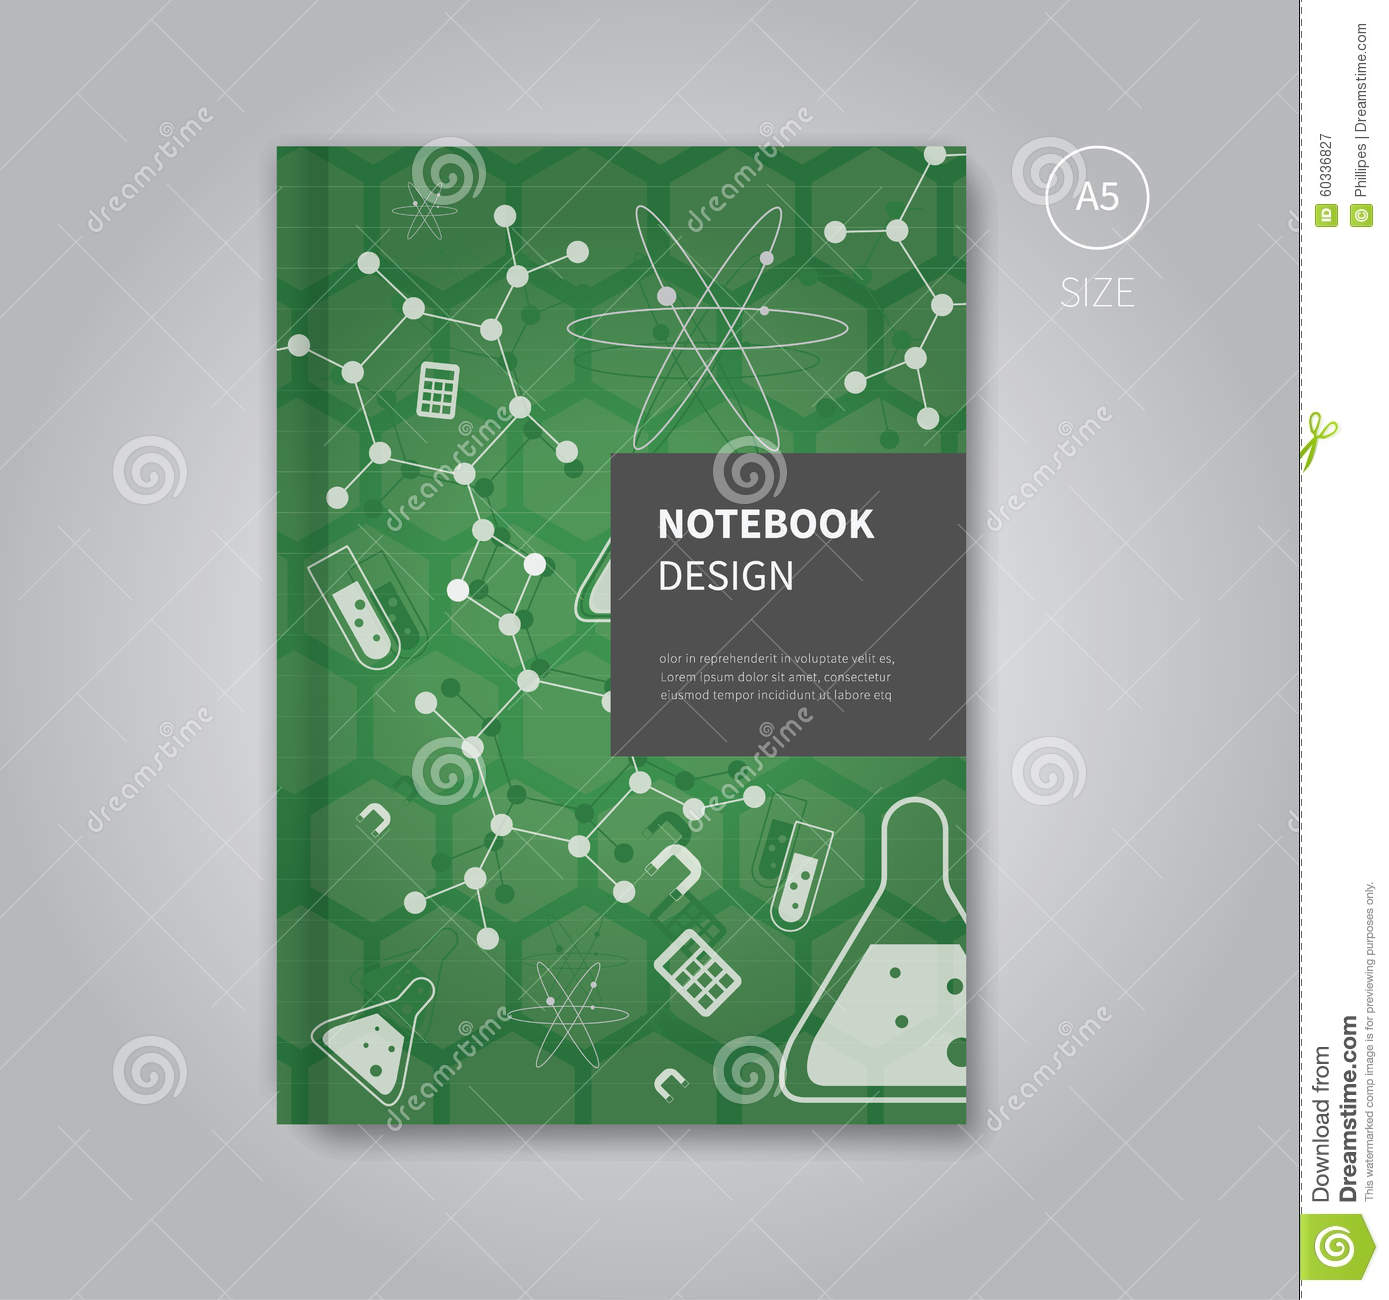 Science Design For Notebook: Notebook Design In Mathematics Template Style Stock Vector